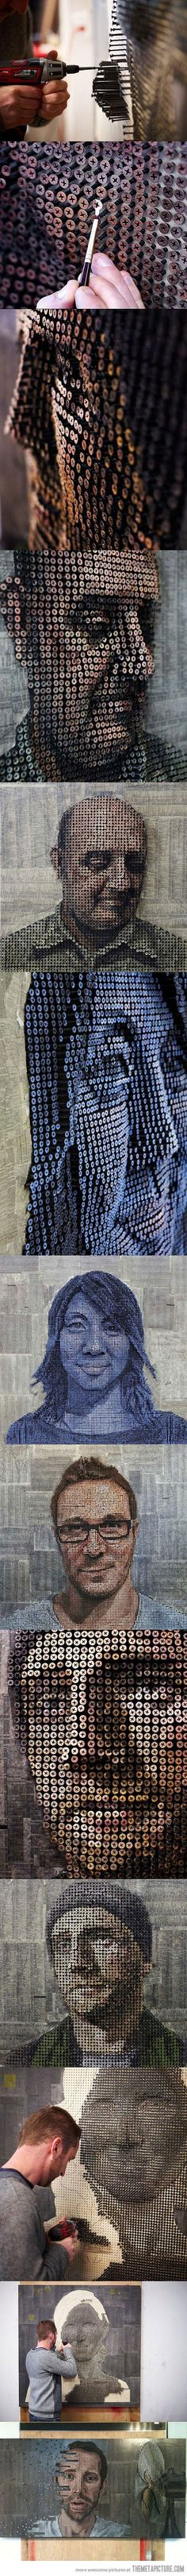 3D portraits made from screws, by Andrew Myers.